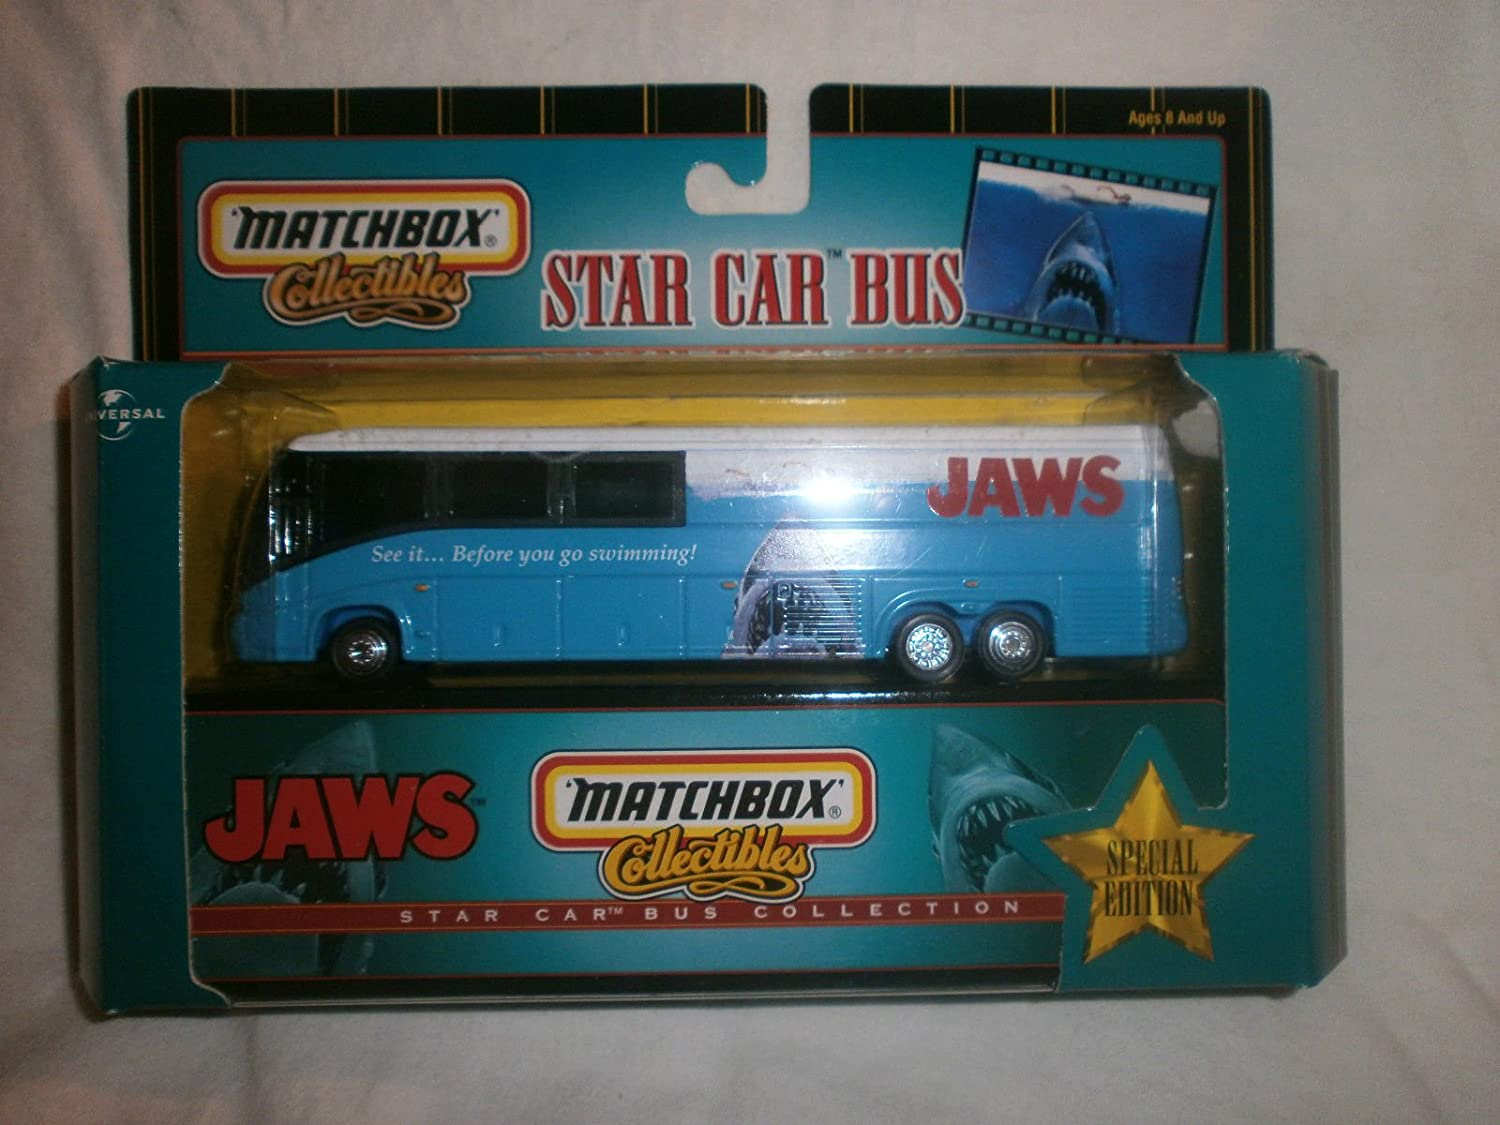 Amazon.com: Matchbox Collectibles Star Car Bus JAWS Special Edition ...